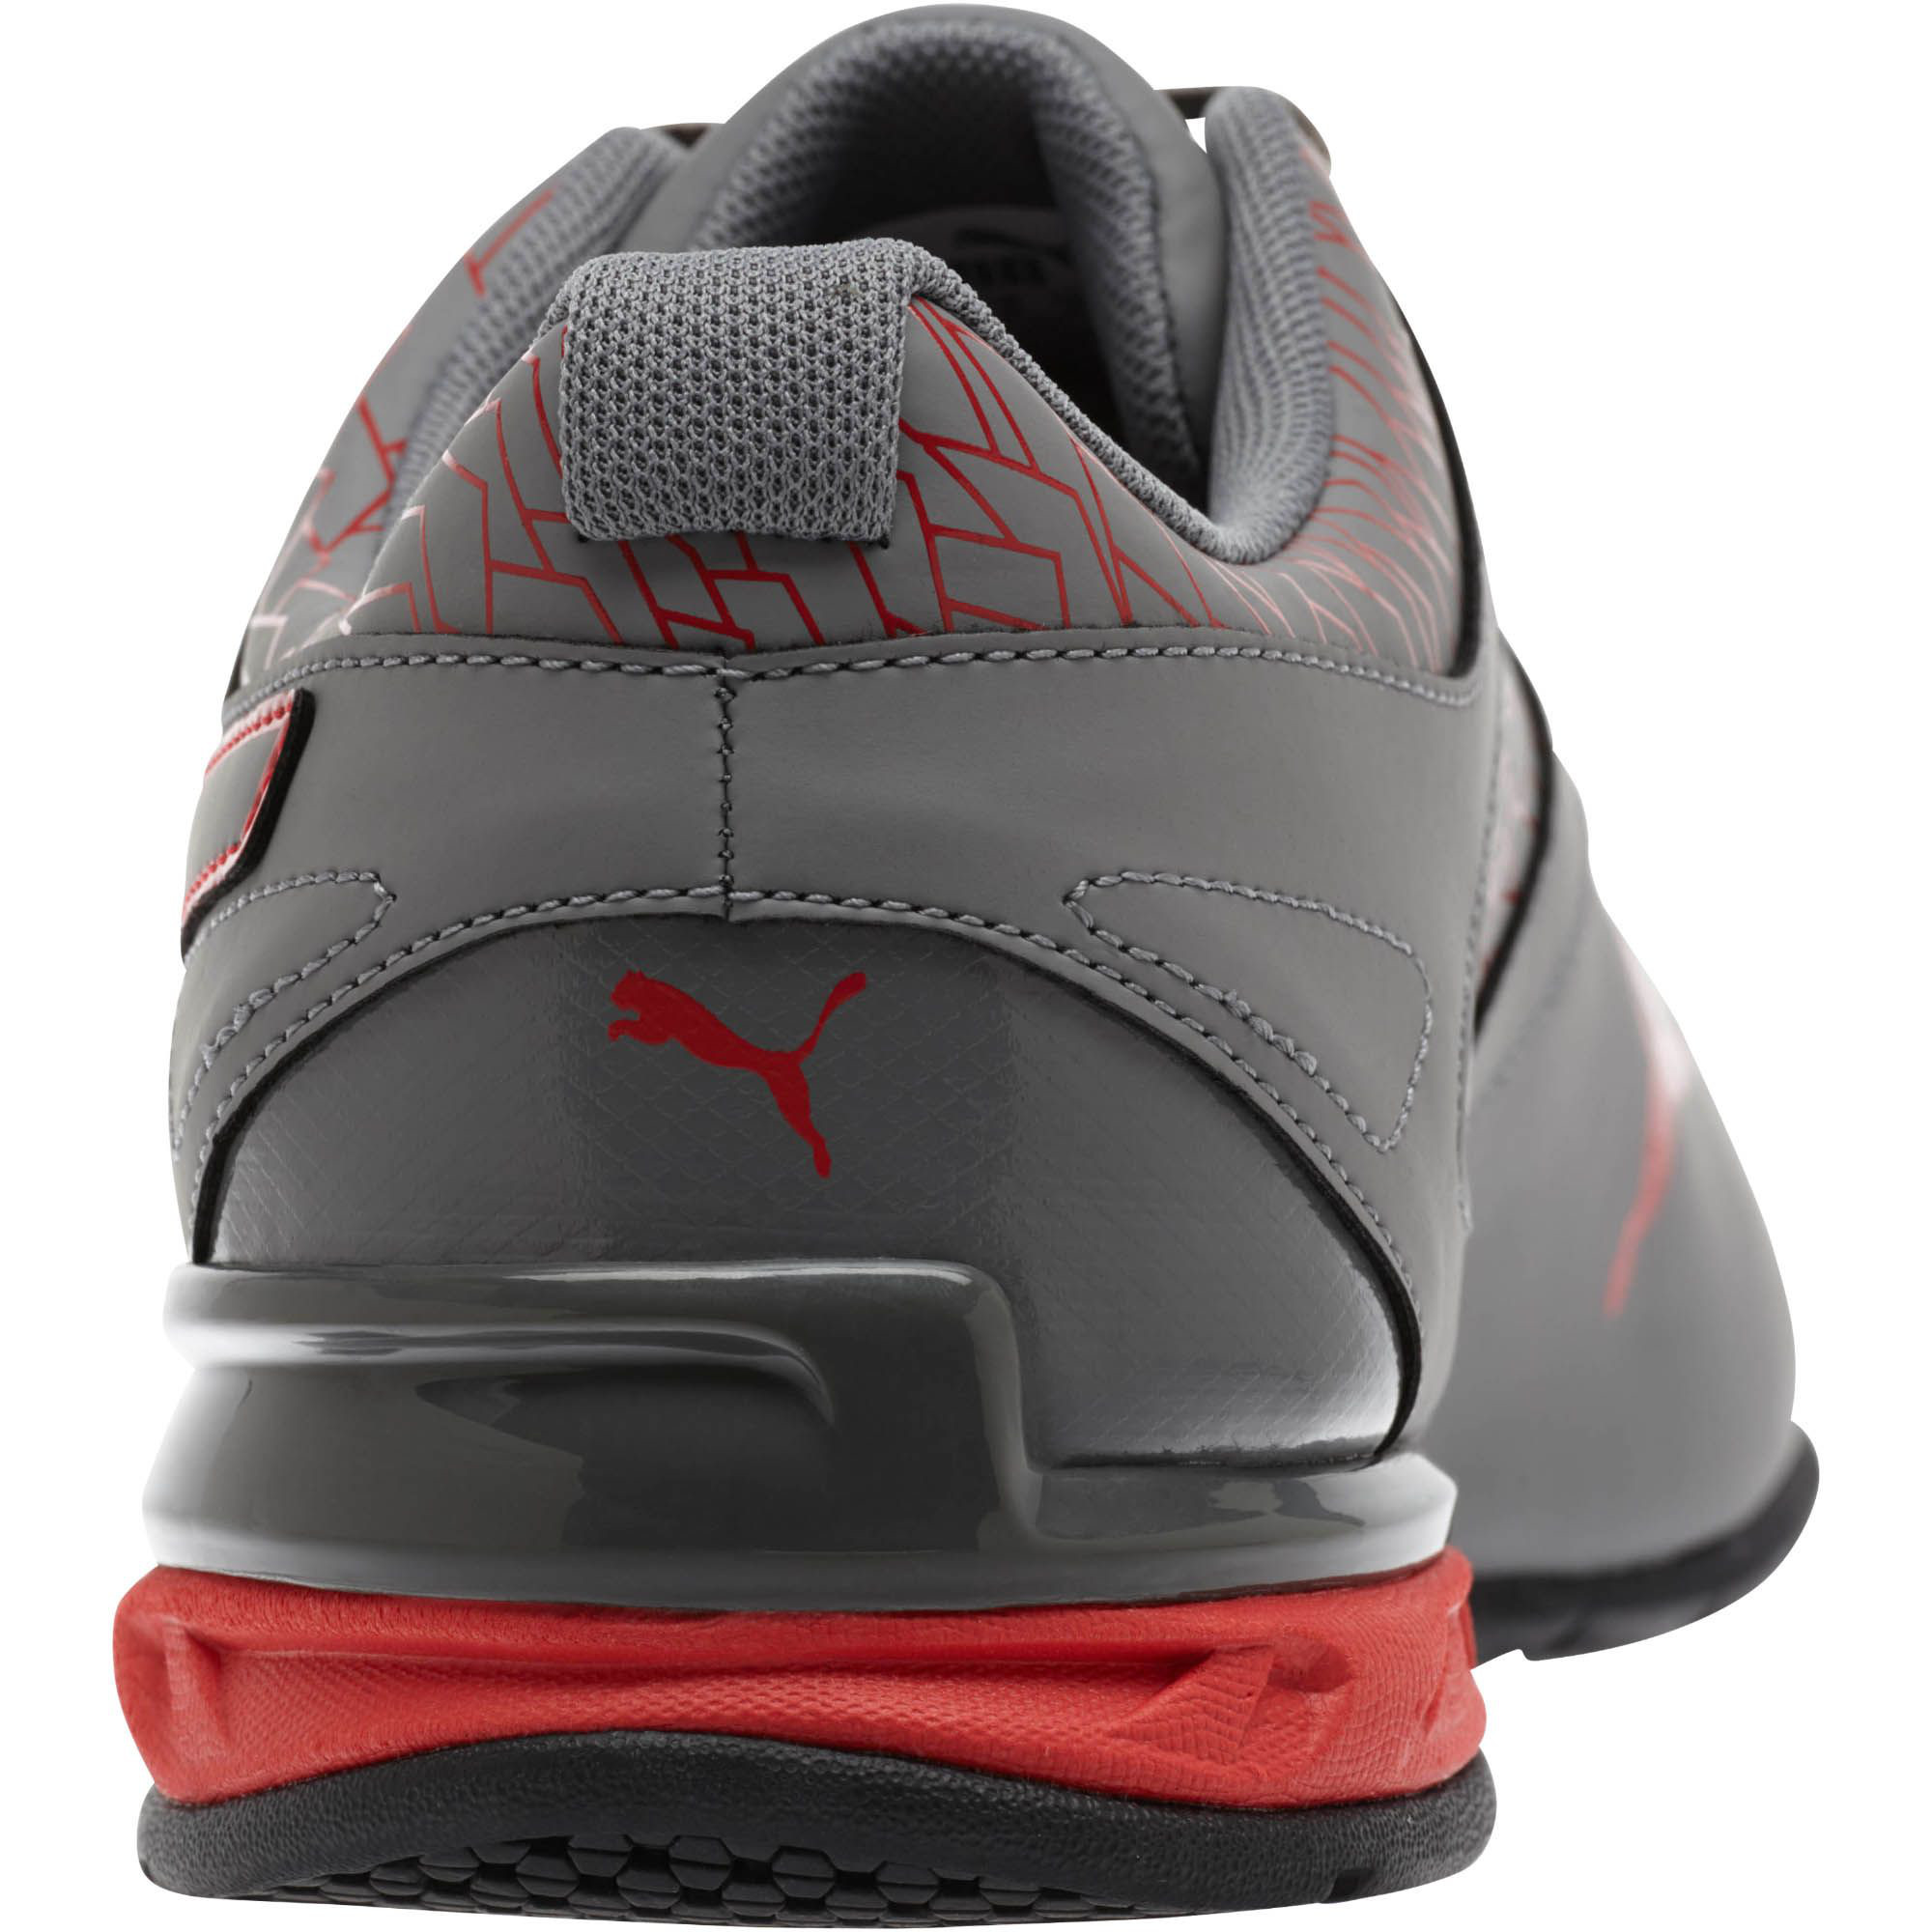 PUMA-Tazon-6-Fracture-FM-Men-039-s-Sneakers-Men-Shoe-Running thumbnail 21